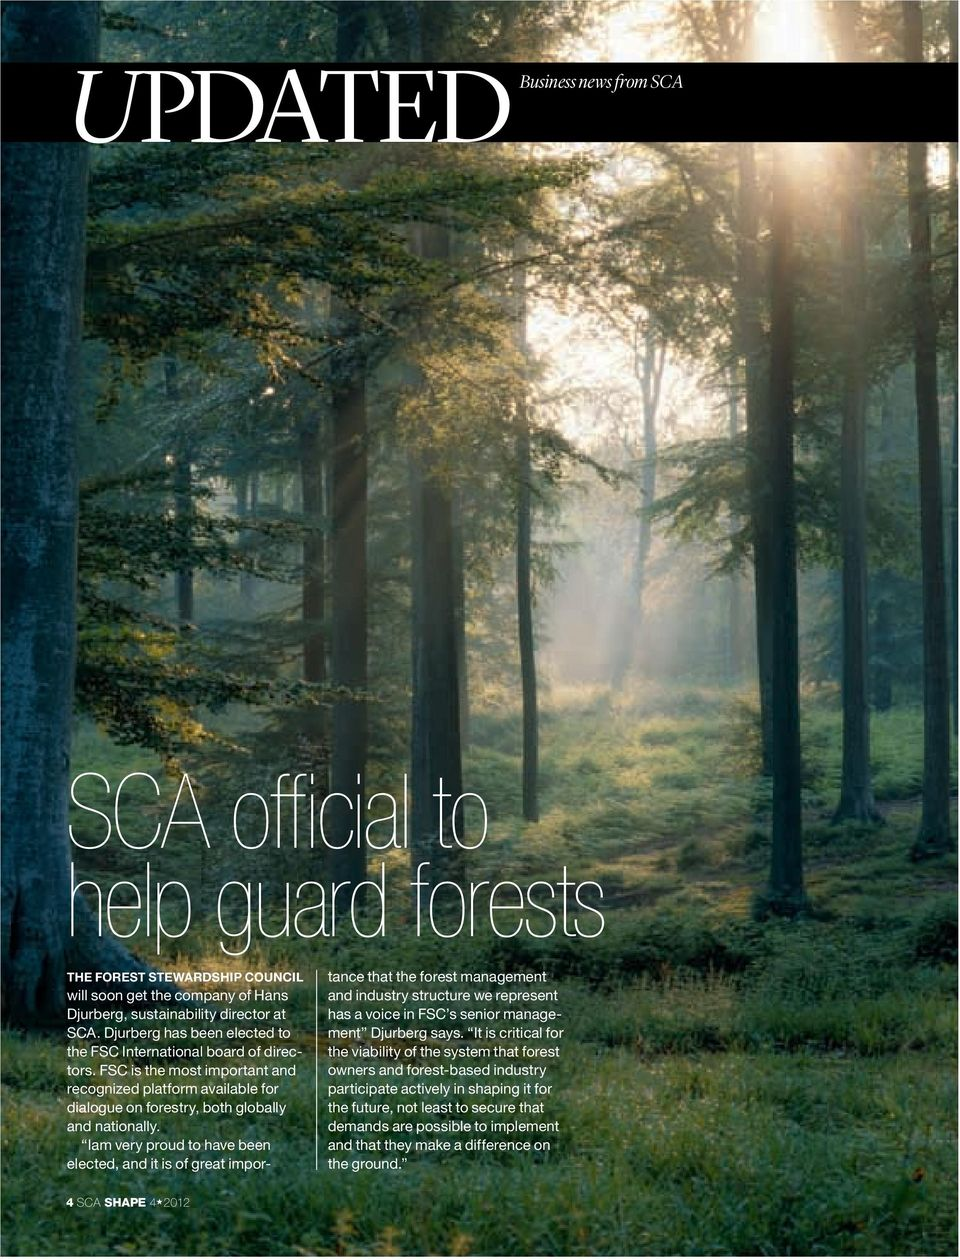 Iam very proud to have been elected, and it is of great importance that the forest management and industry structure we represent has a voice in FSC s senior management Djurberg says.